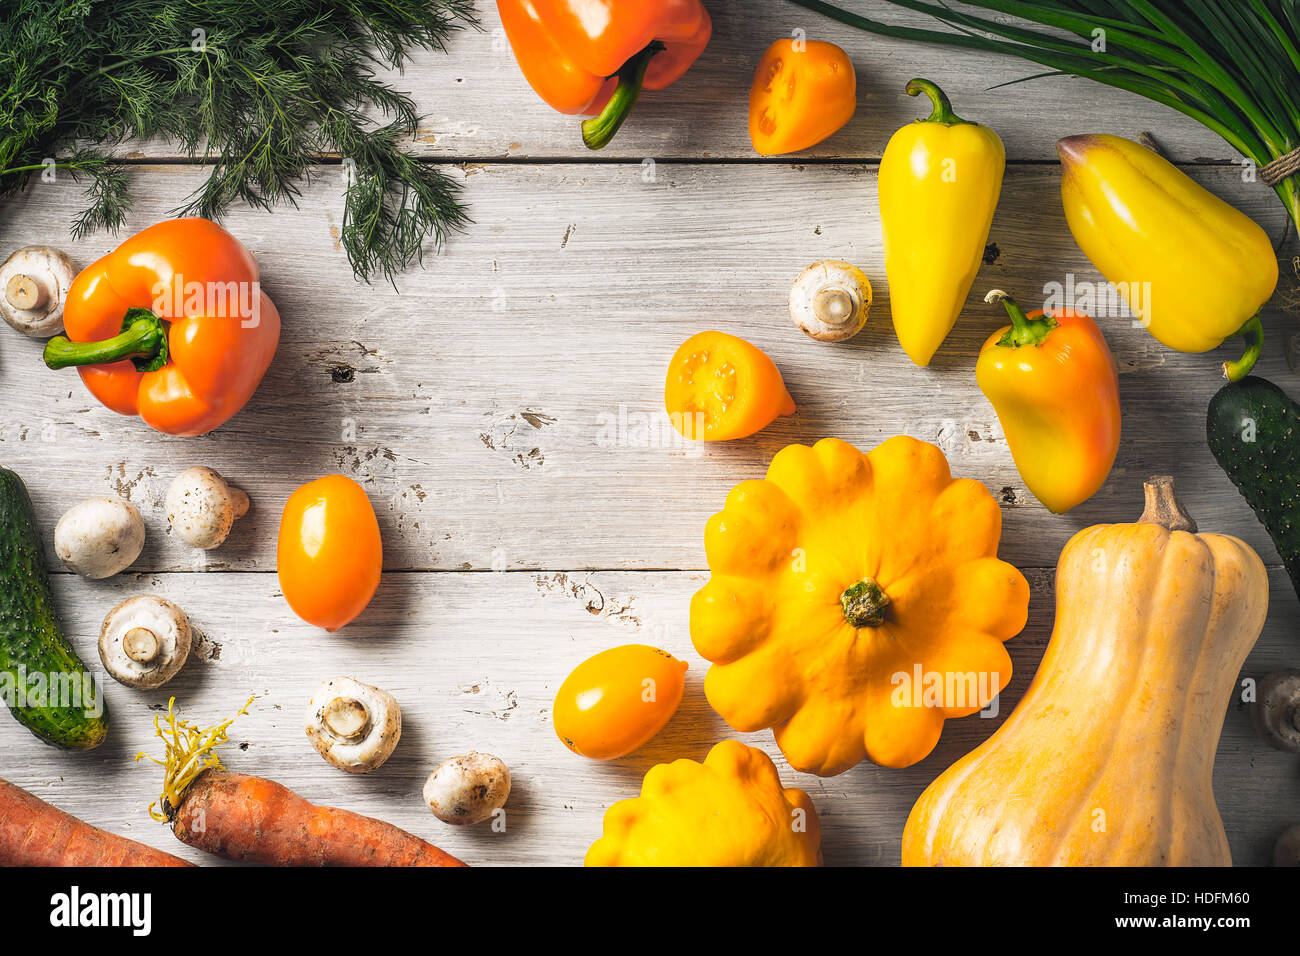 Yellow and green vegetables on the white wooden table - Stock Image